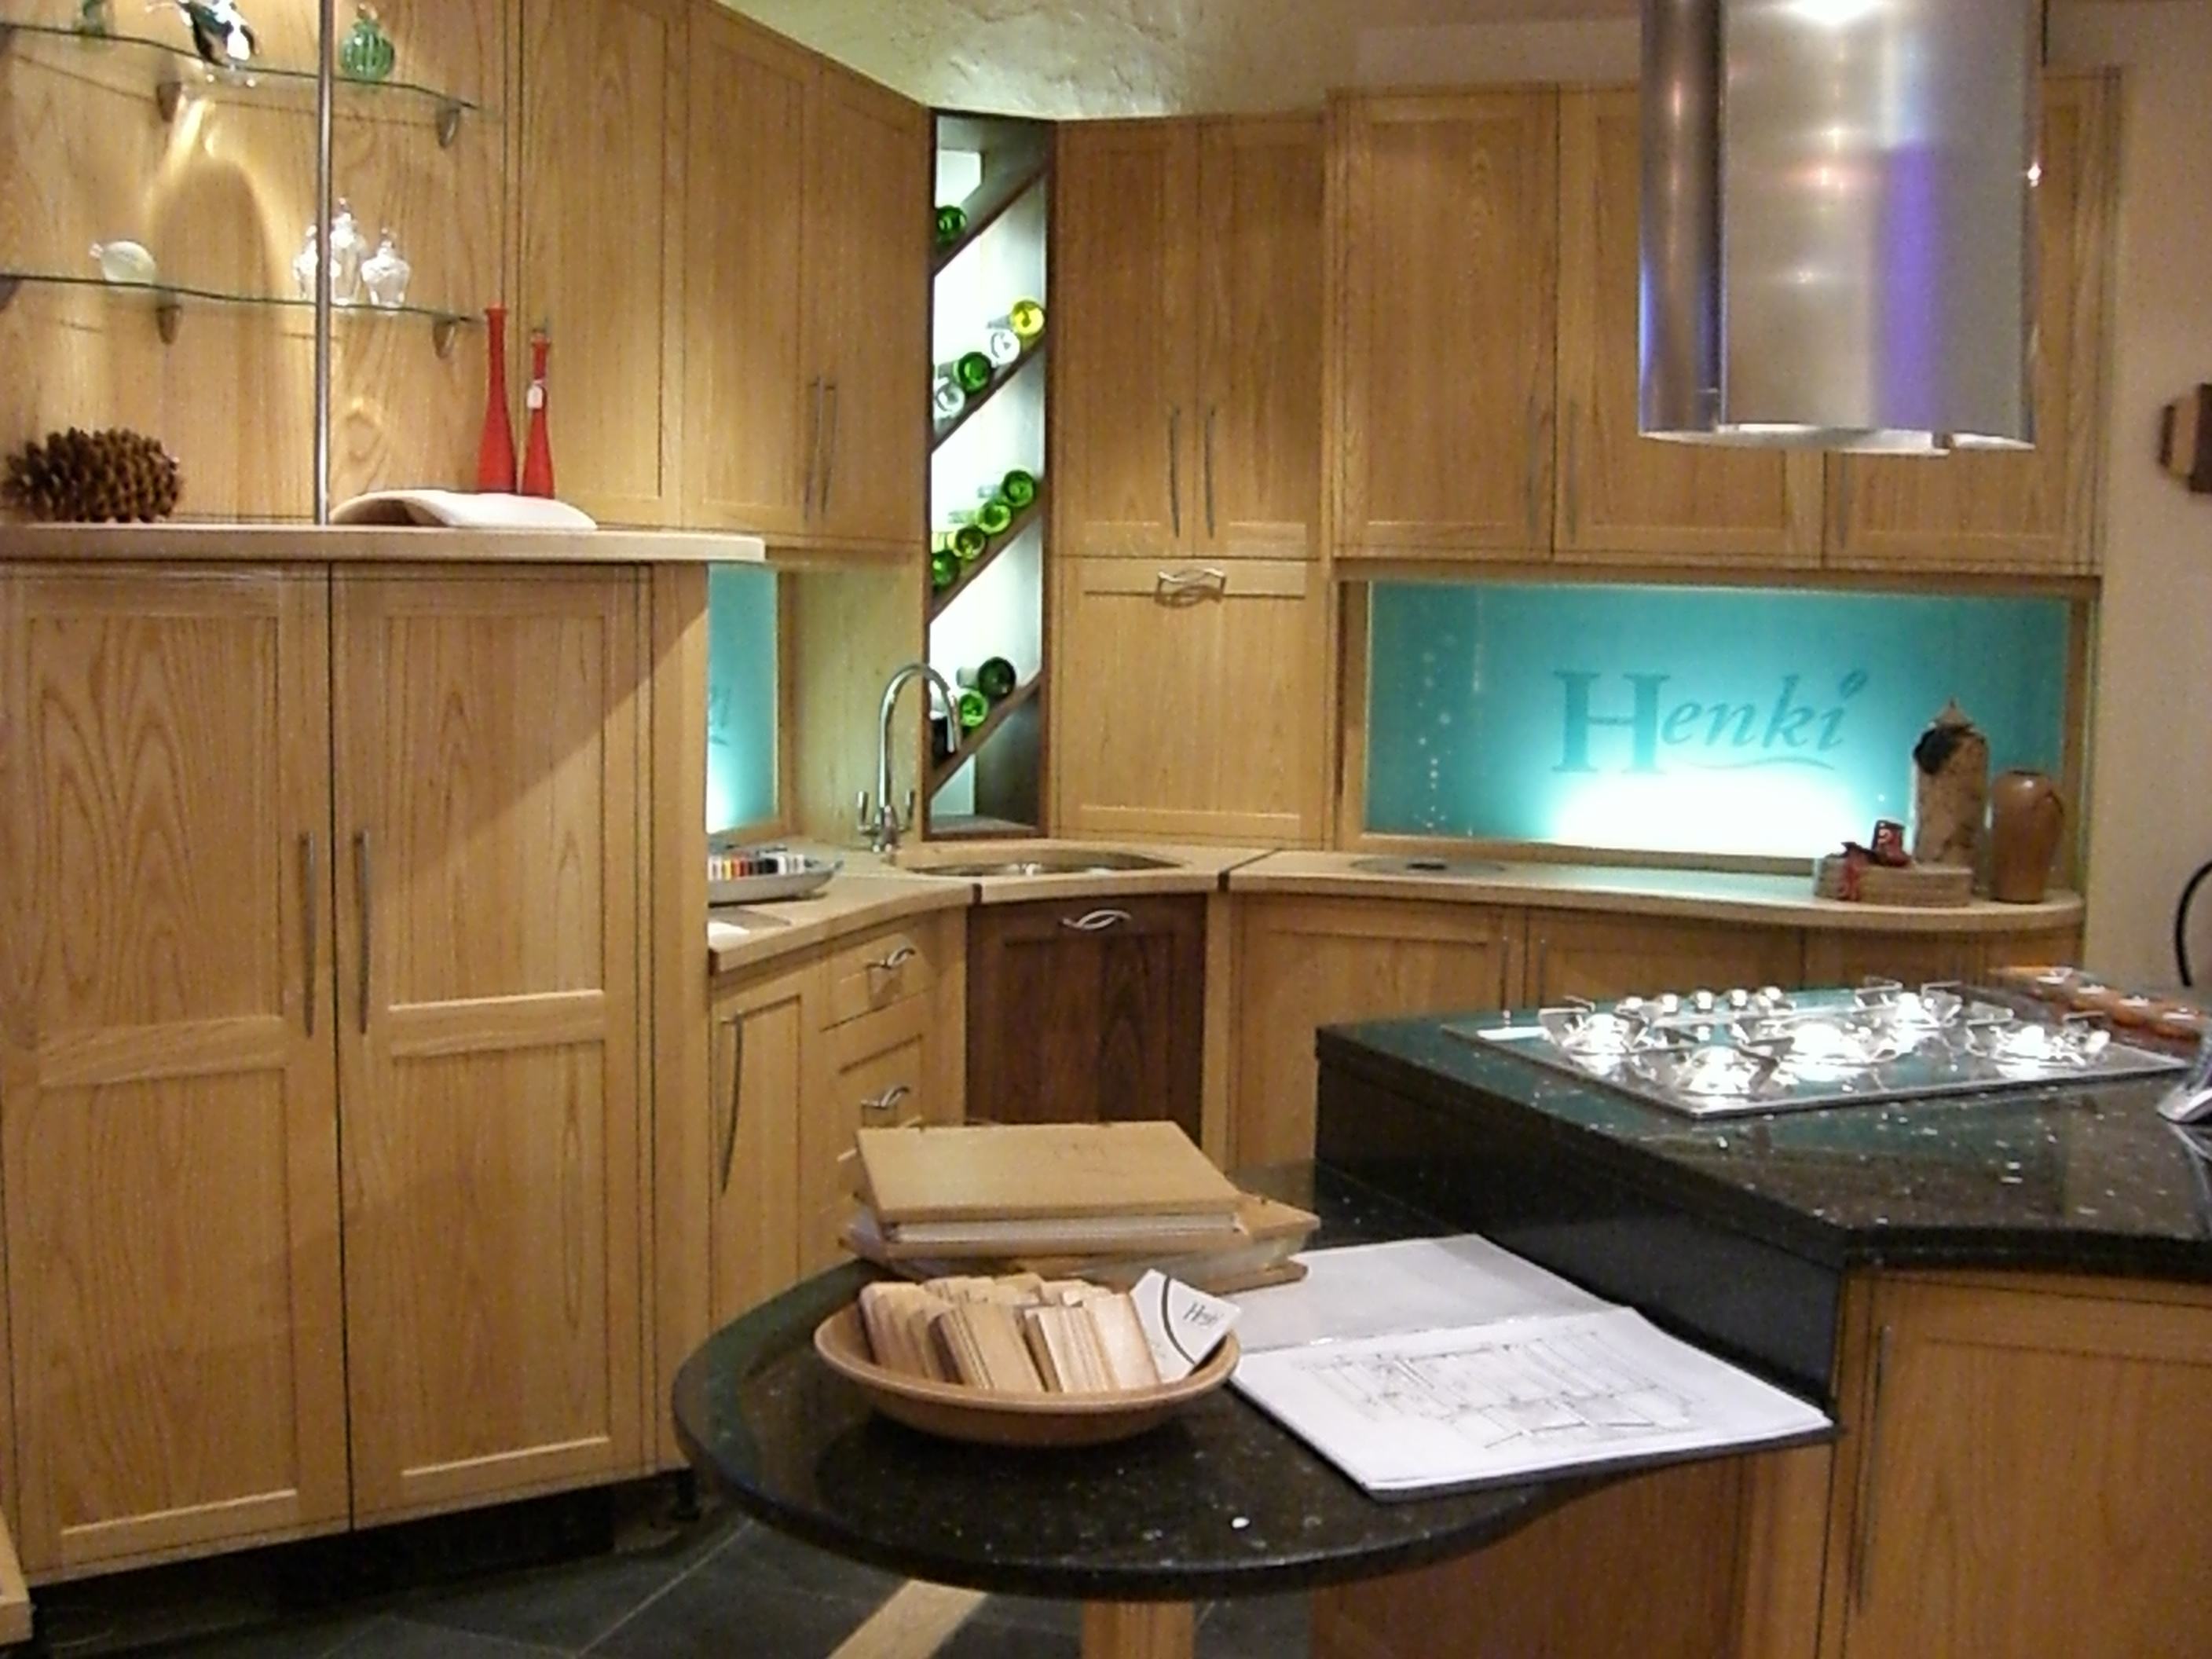 Henki Bespoke Cabinet Makers